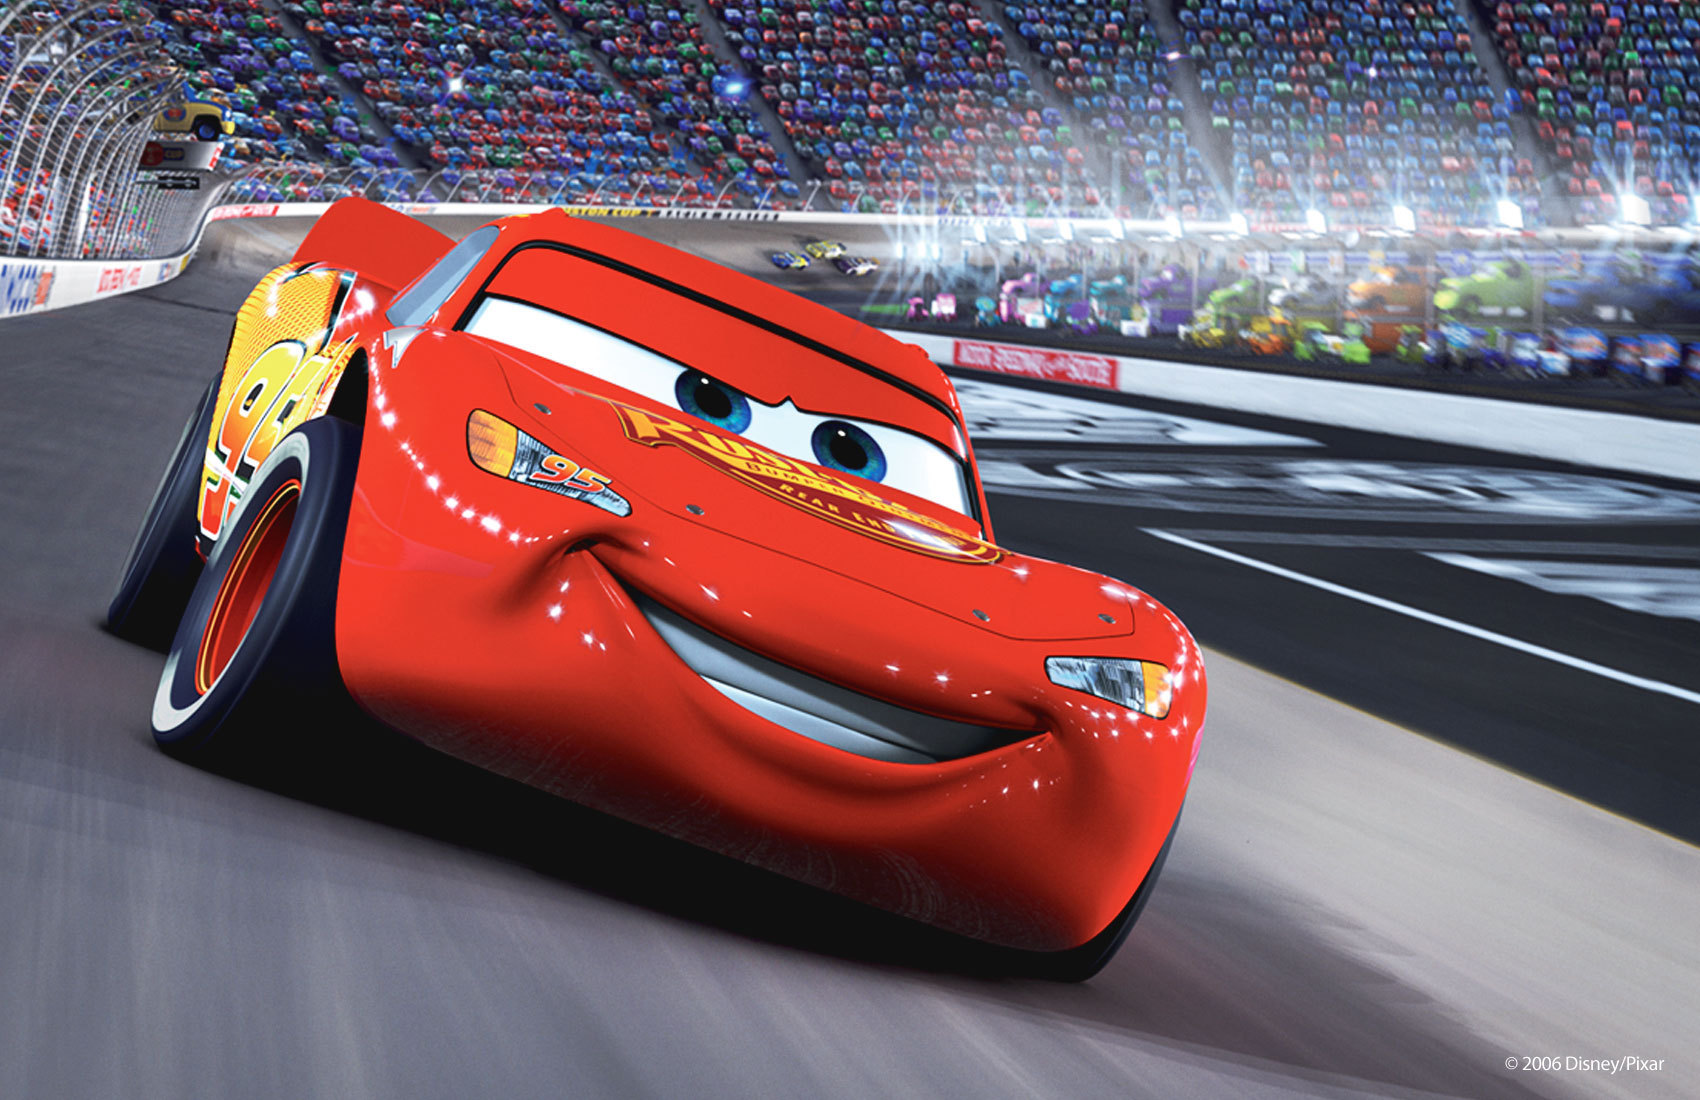 Disney Pixar Cars Images Ethan Hd Wallpaper And Background Photos